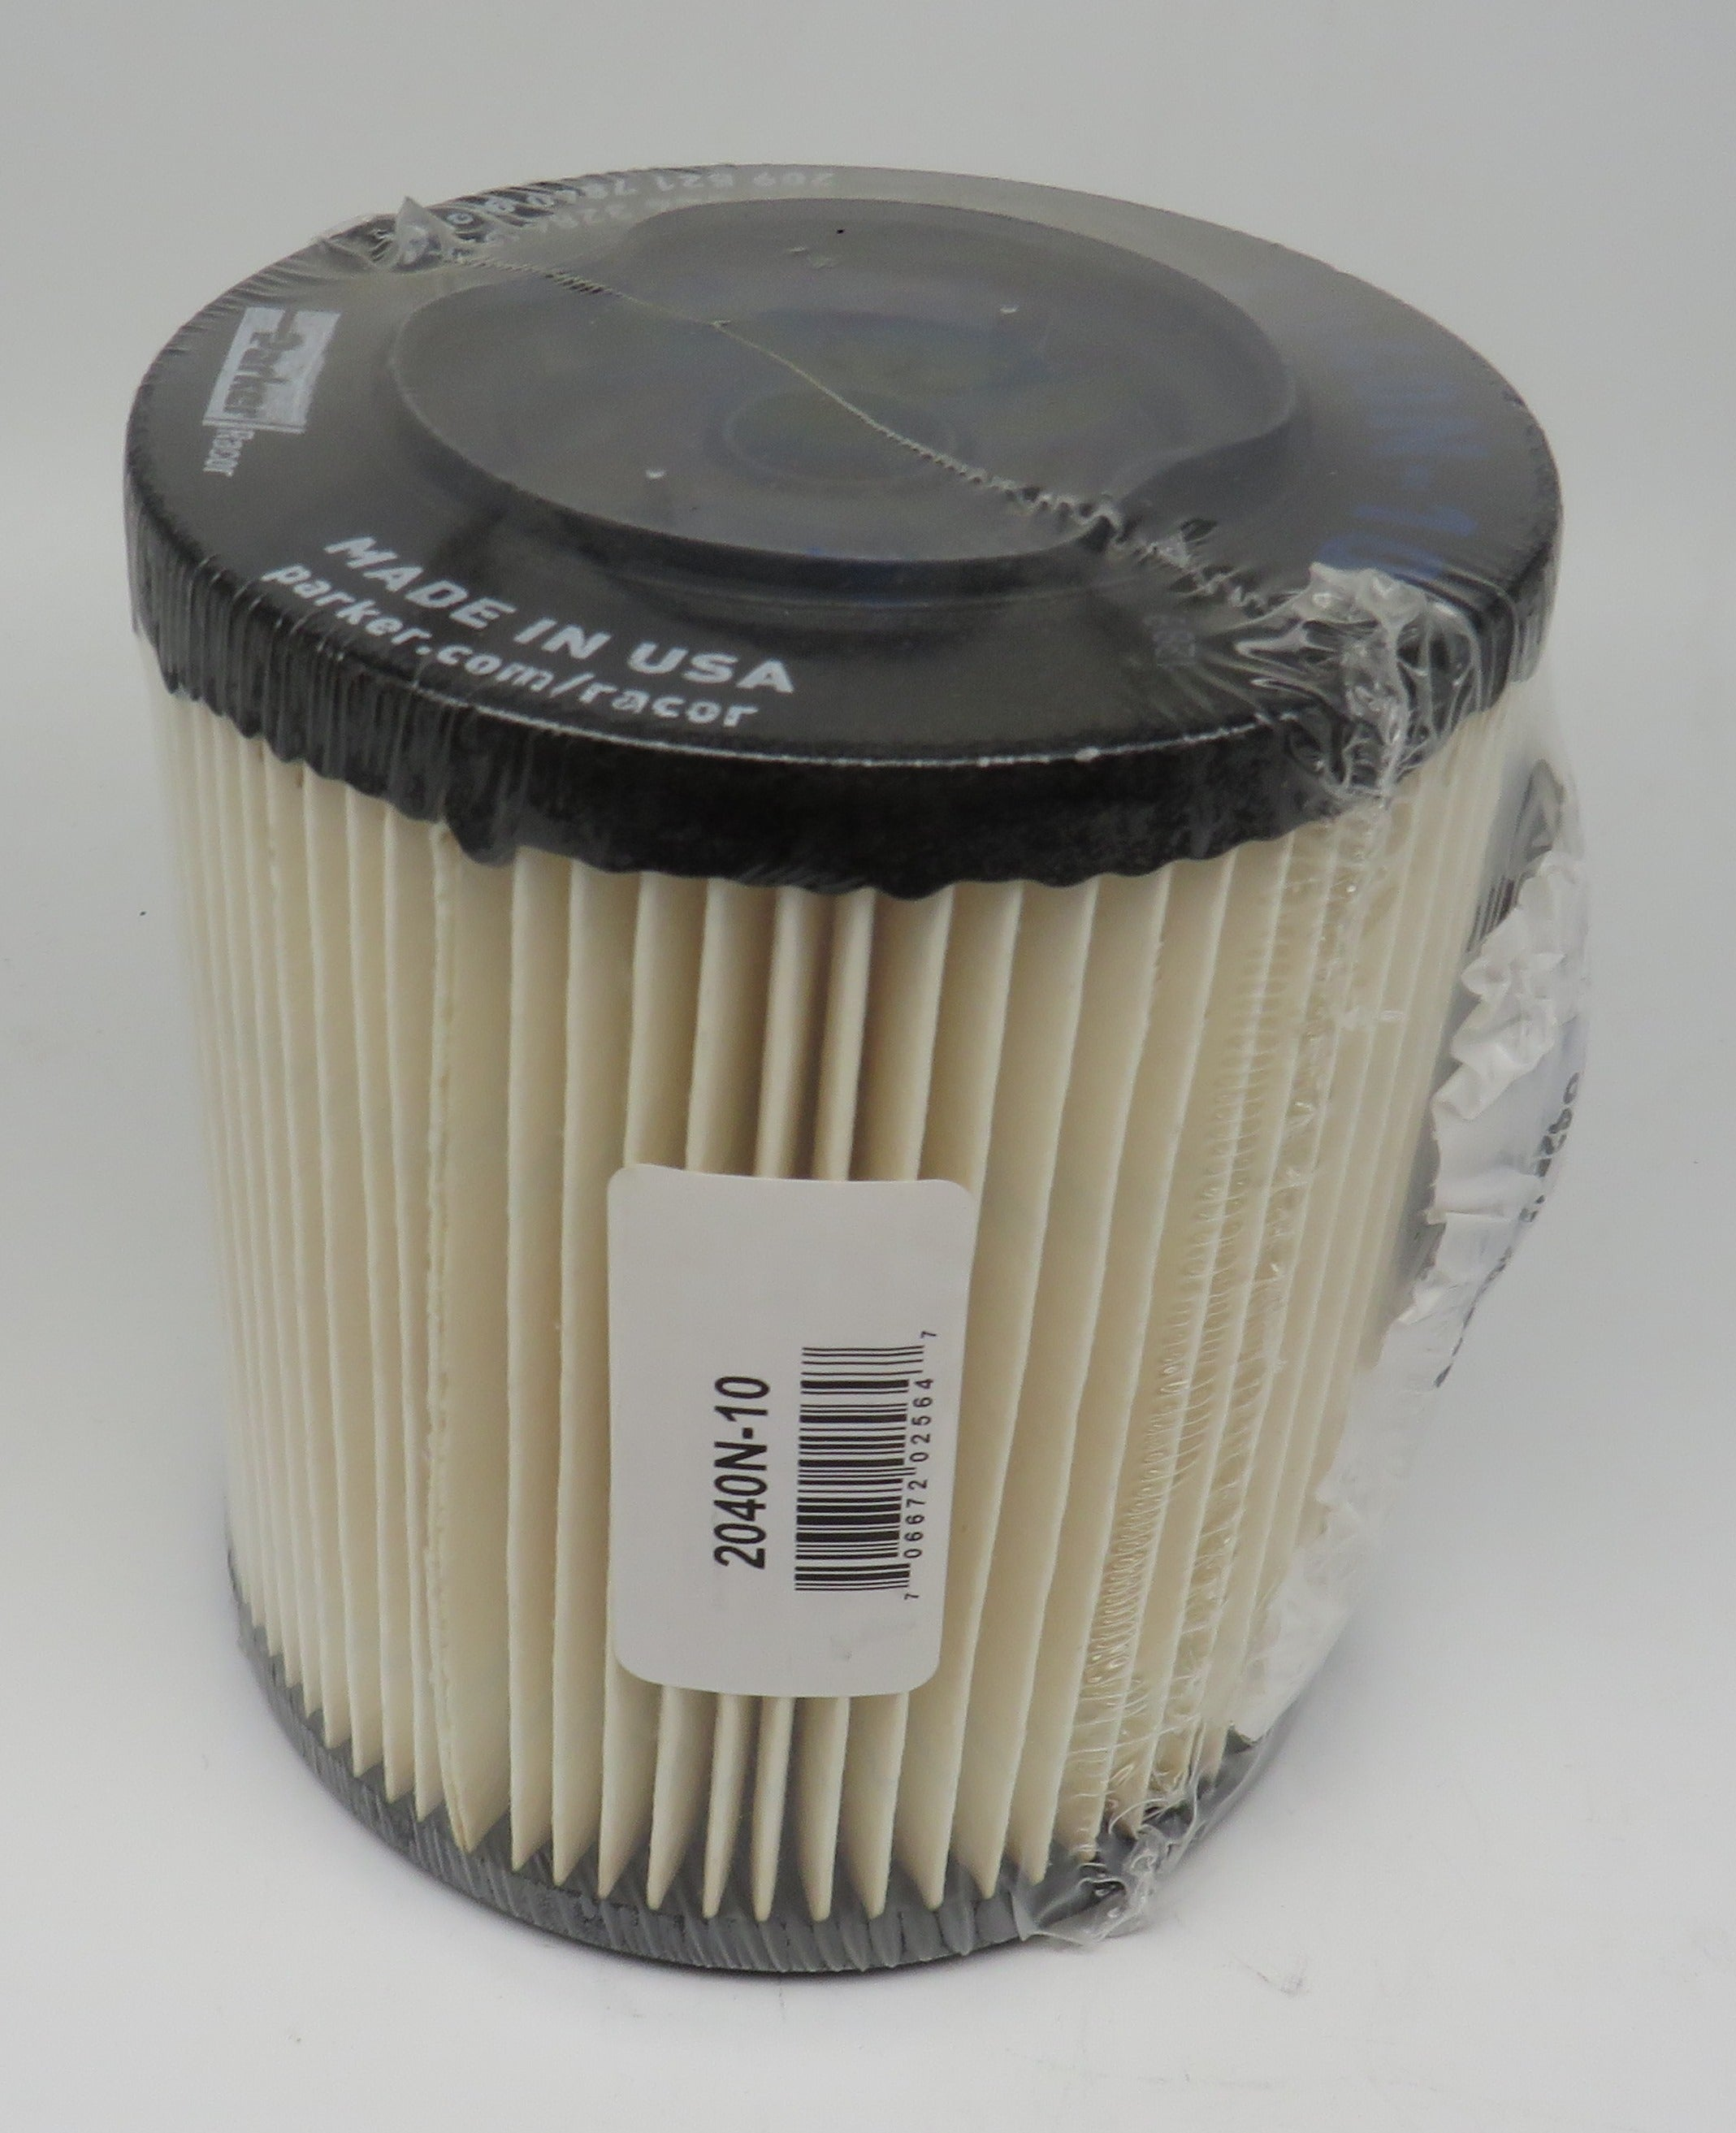 2040N-10 Racor 10 Micron Fuel Filter Replaces 2040TMOR